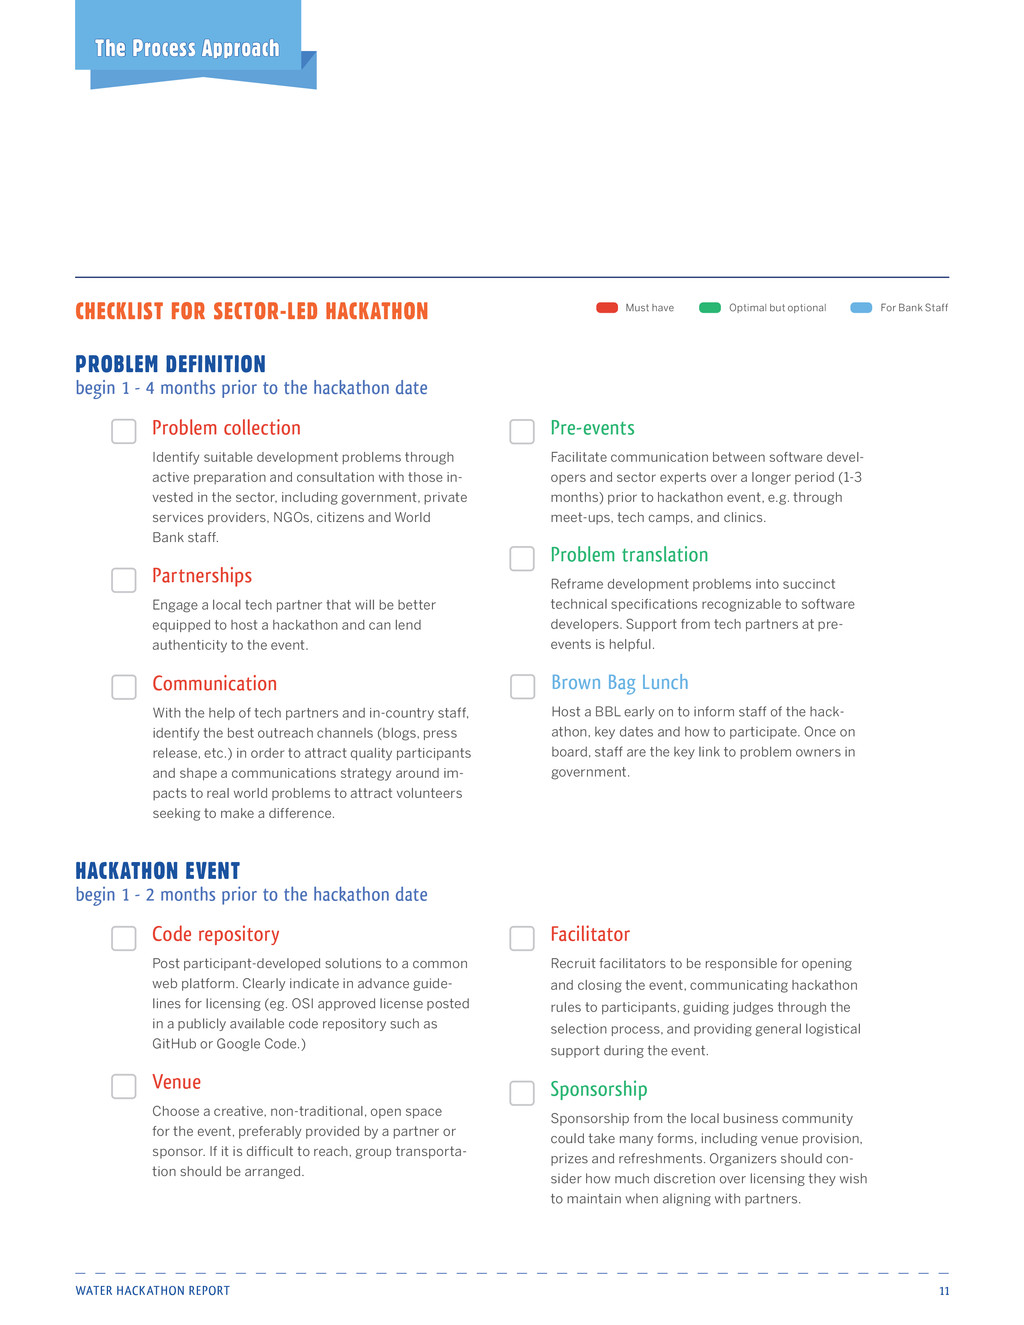 Water Hackathon Report 11 Checklist for Sector-...